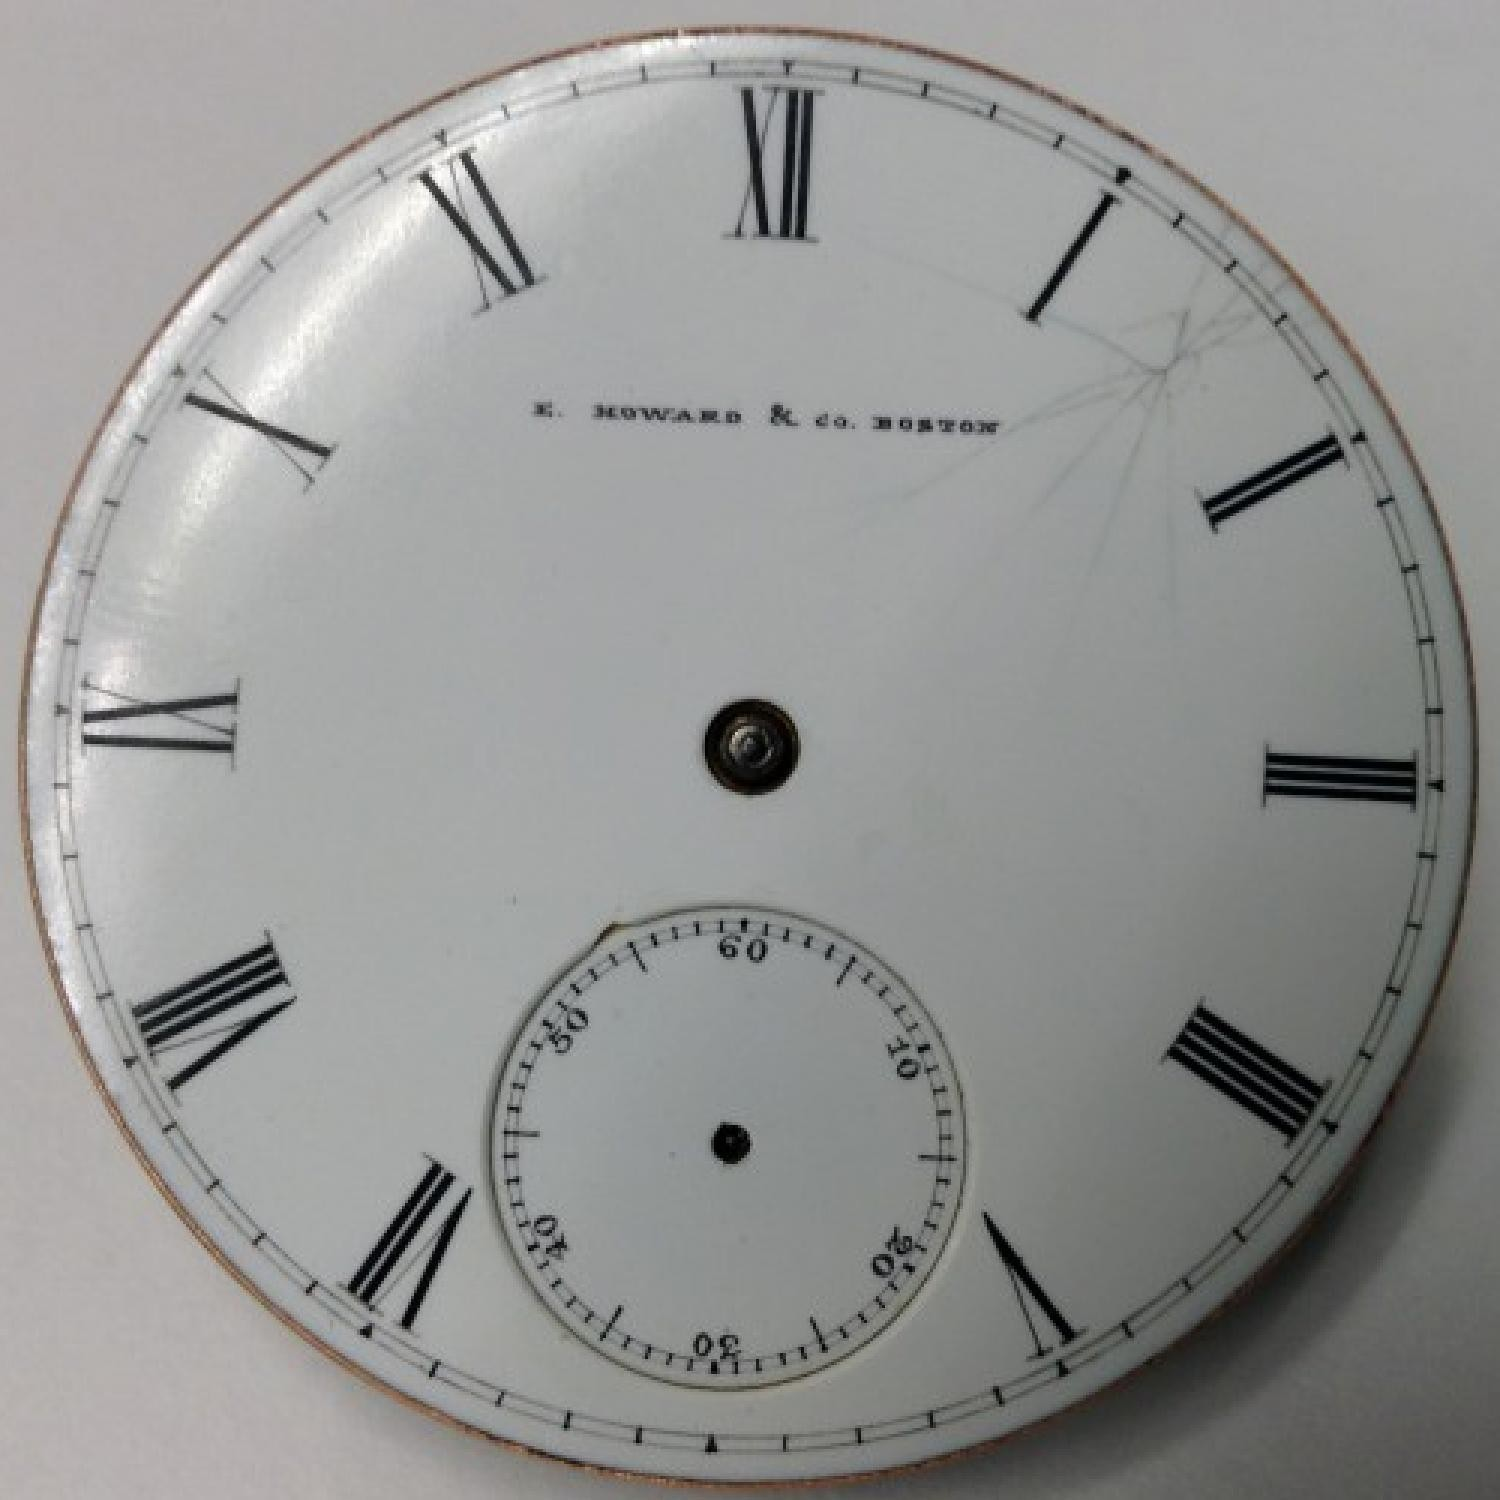 Image of E. Howard & Co. Series III #11607 Dial